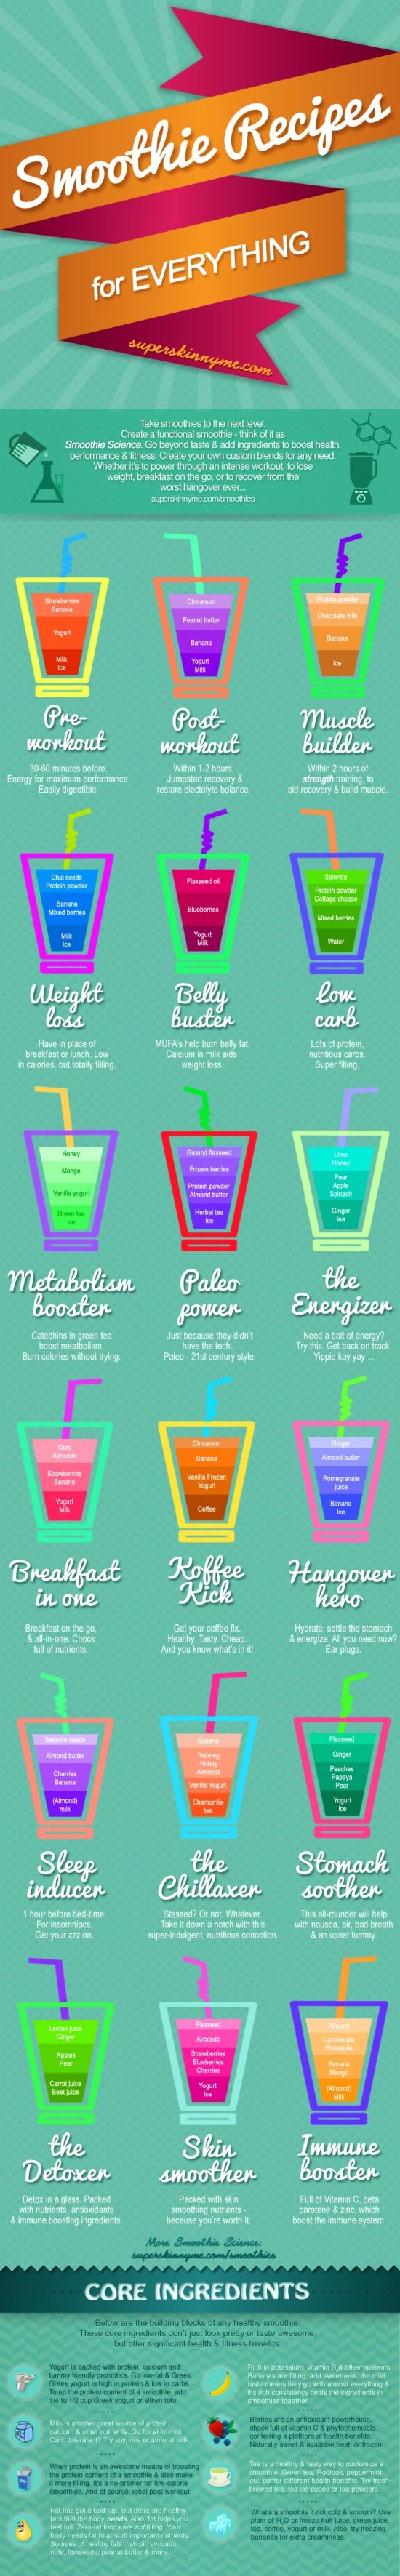 Smoothies for every occasion! Detox, sleep-inducing, immune-boosting, and energizing smoothies plus many more ideas.